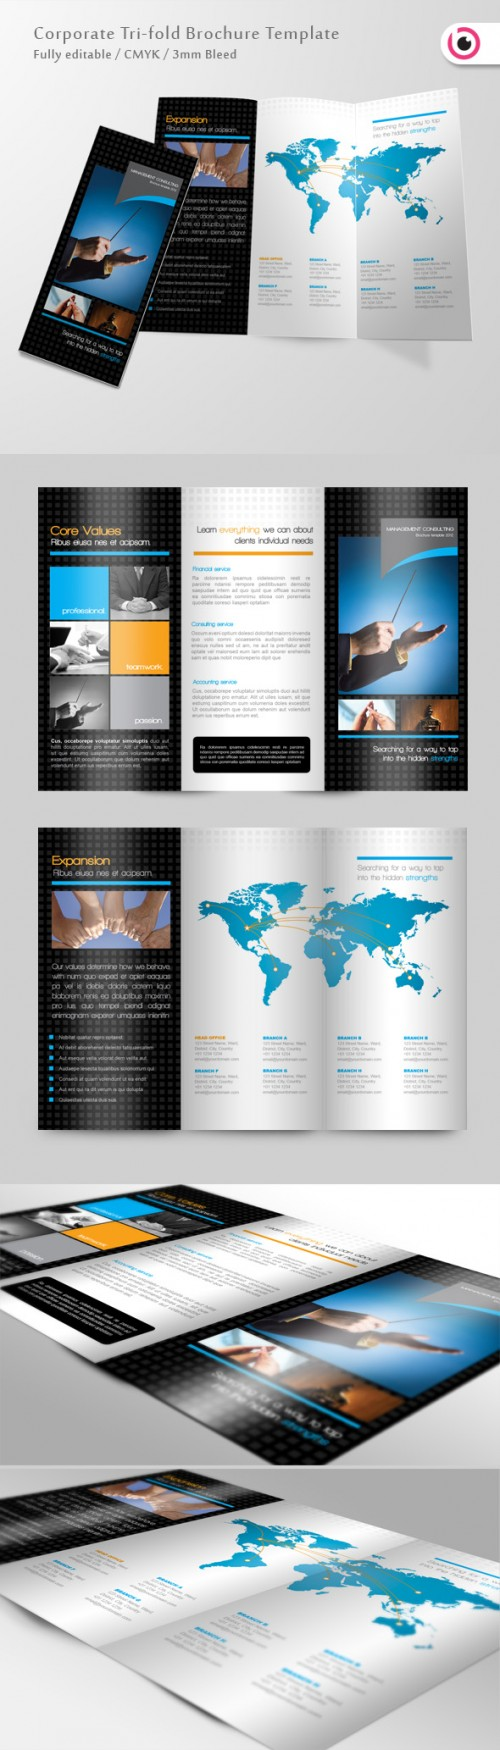 19_Consulting Trifold Brochure